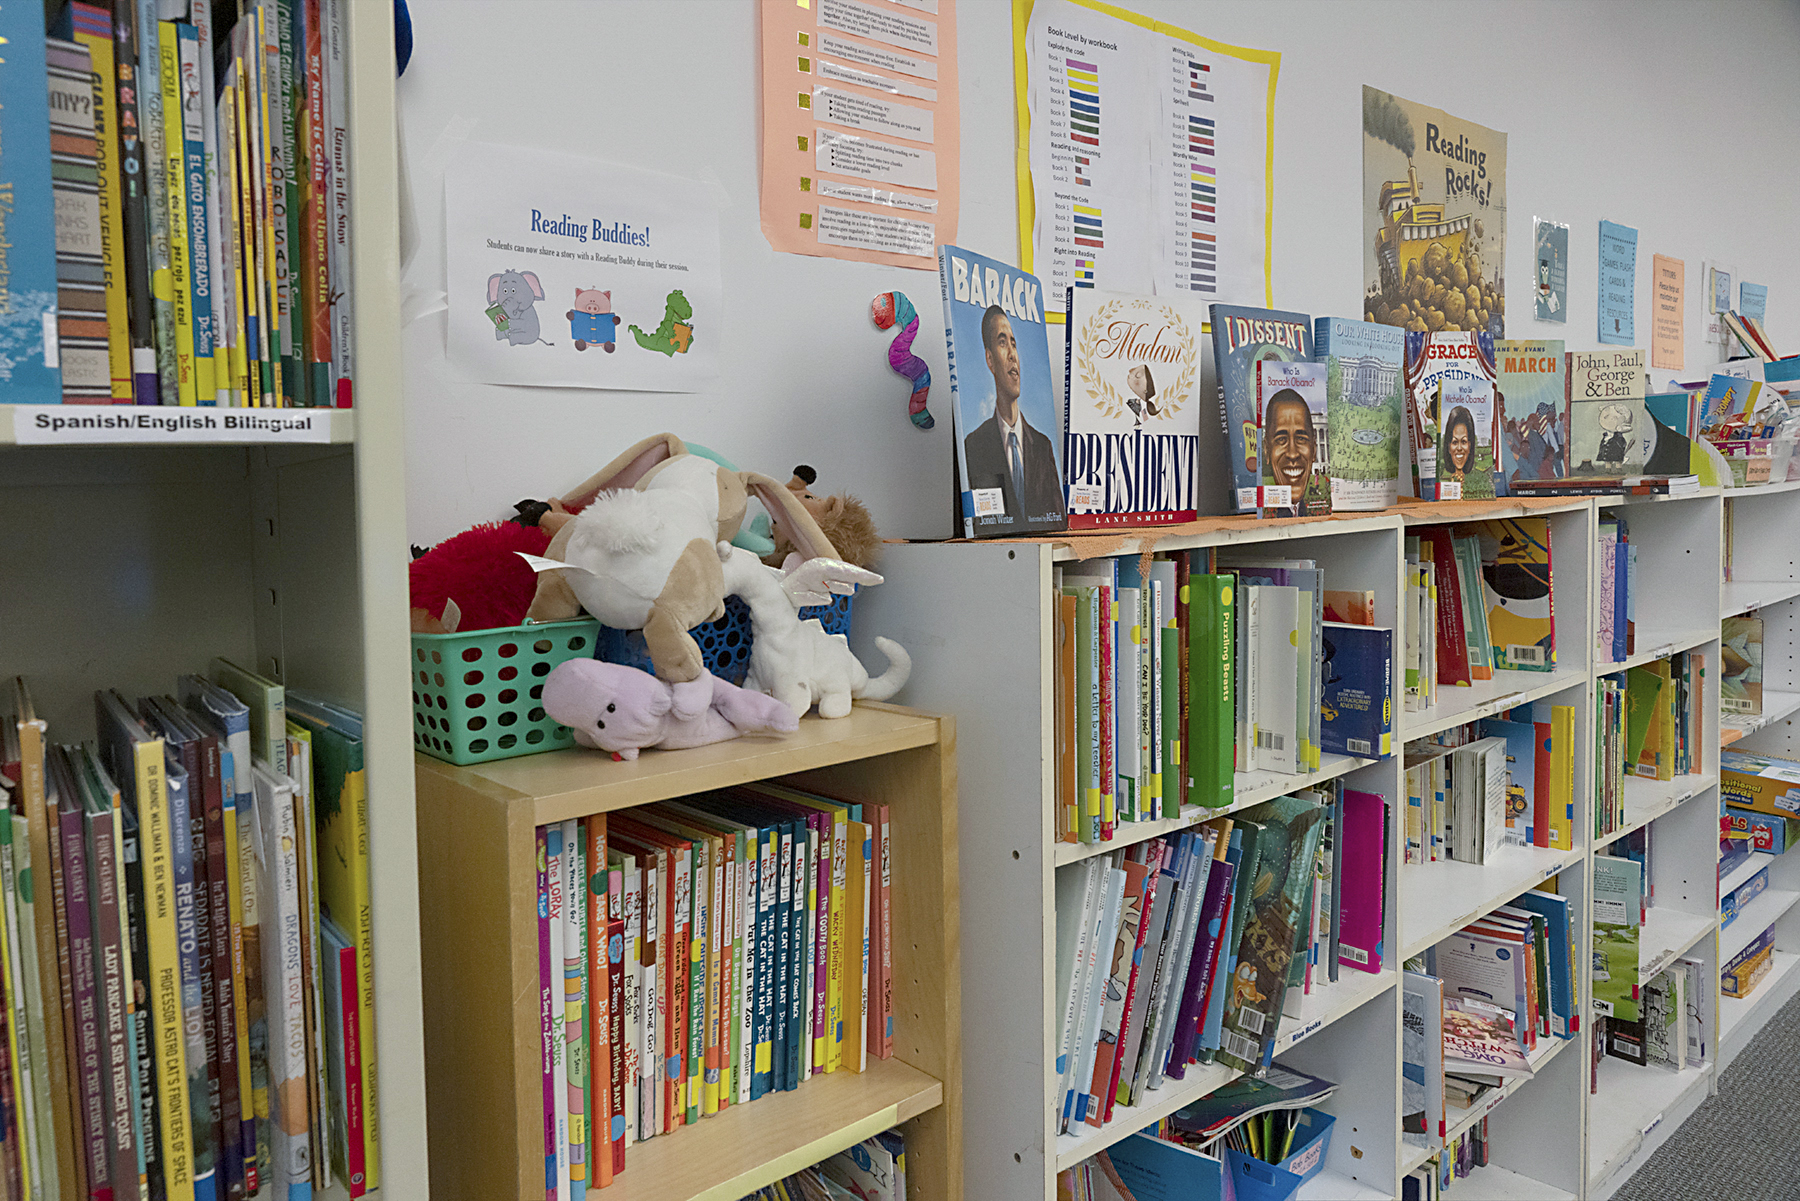 Shelves full of books for students to choose from for the read-aloud portion of tutoring